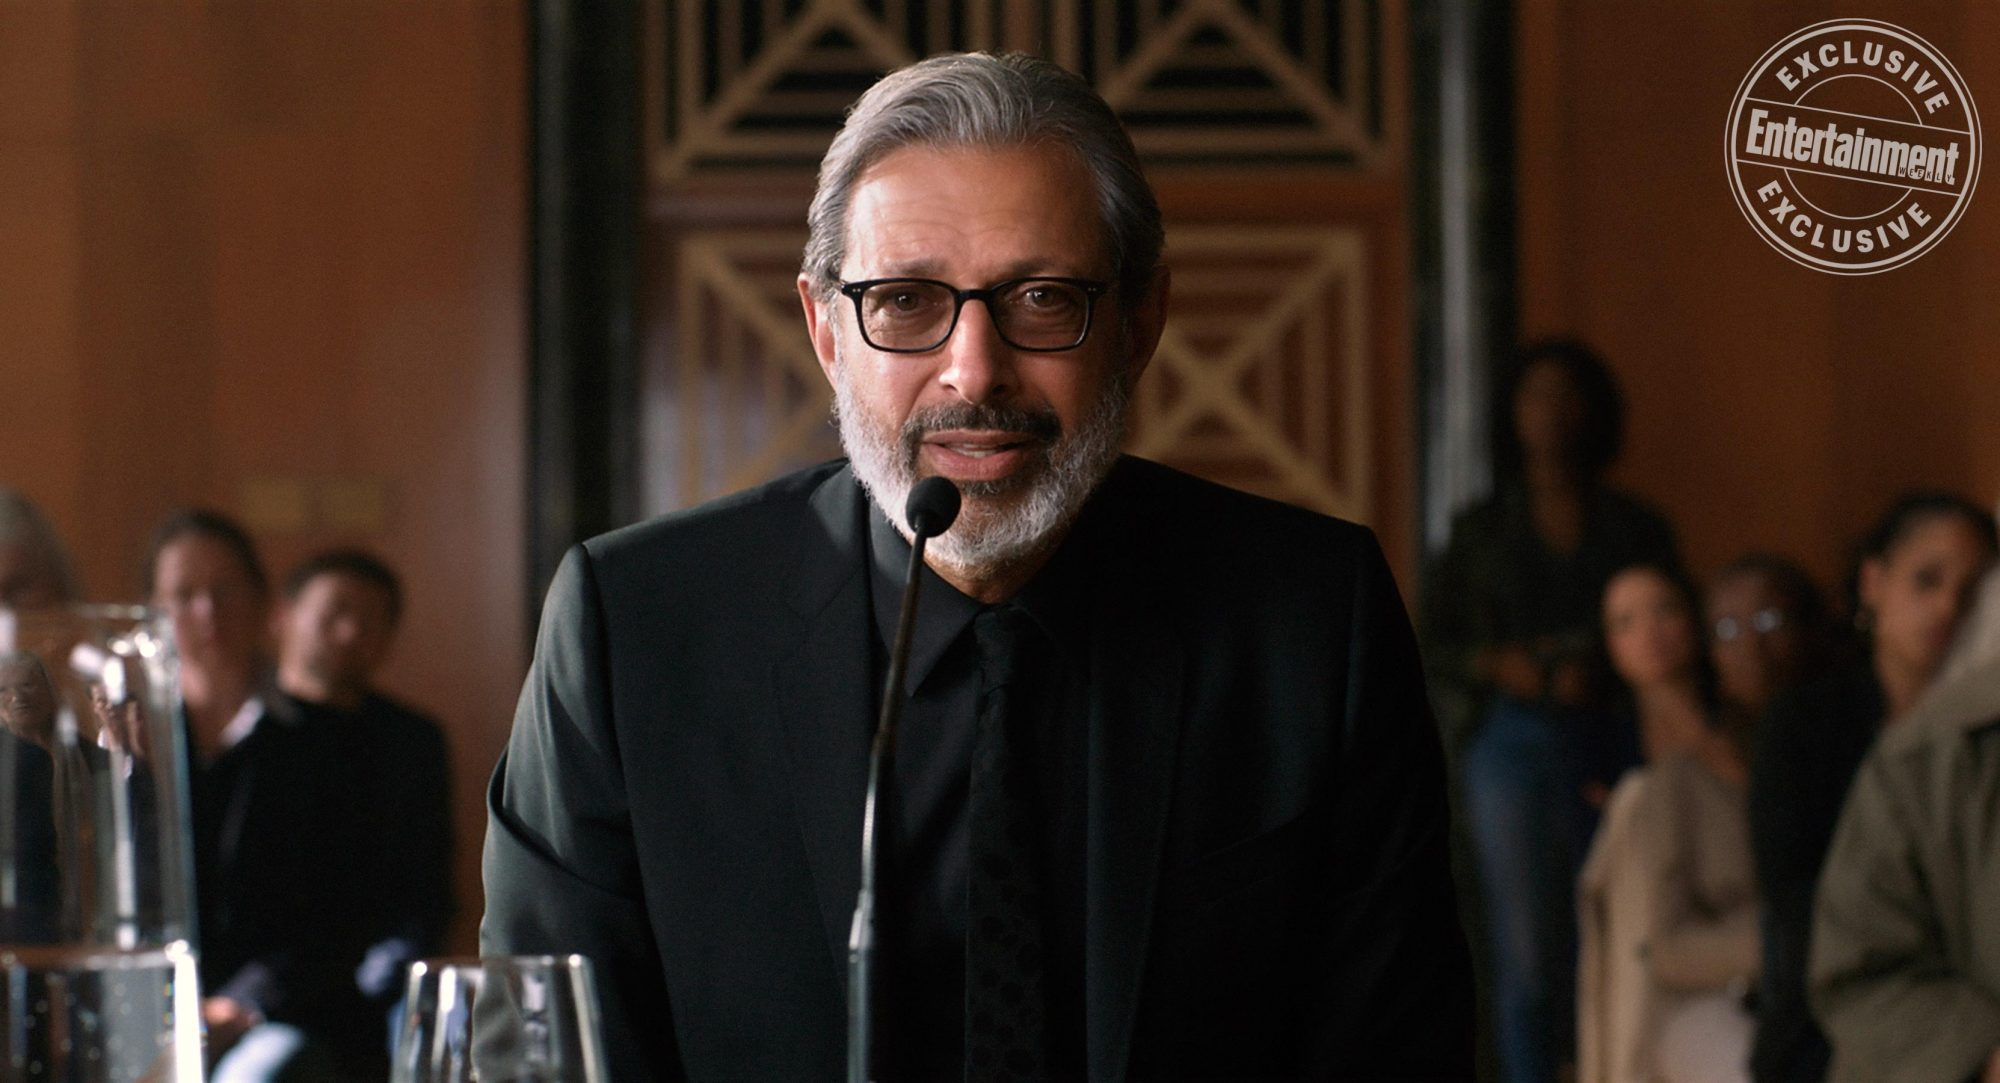 JURASSIC WORLD: FALLEN KINGDOMJeff Goldblum (as Ian Malcolm)